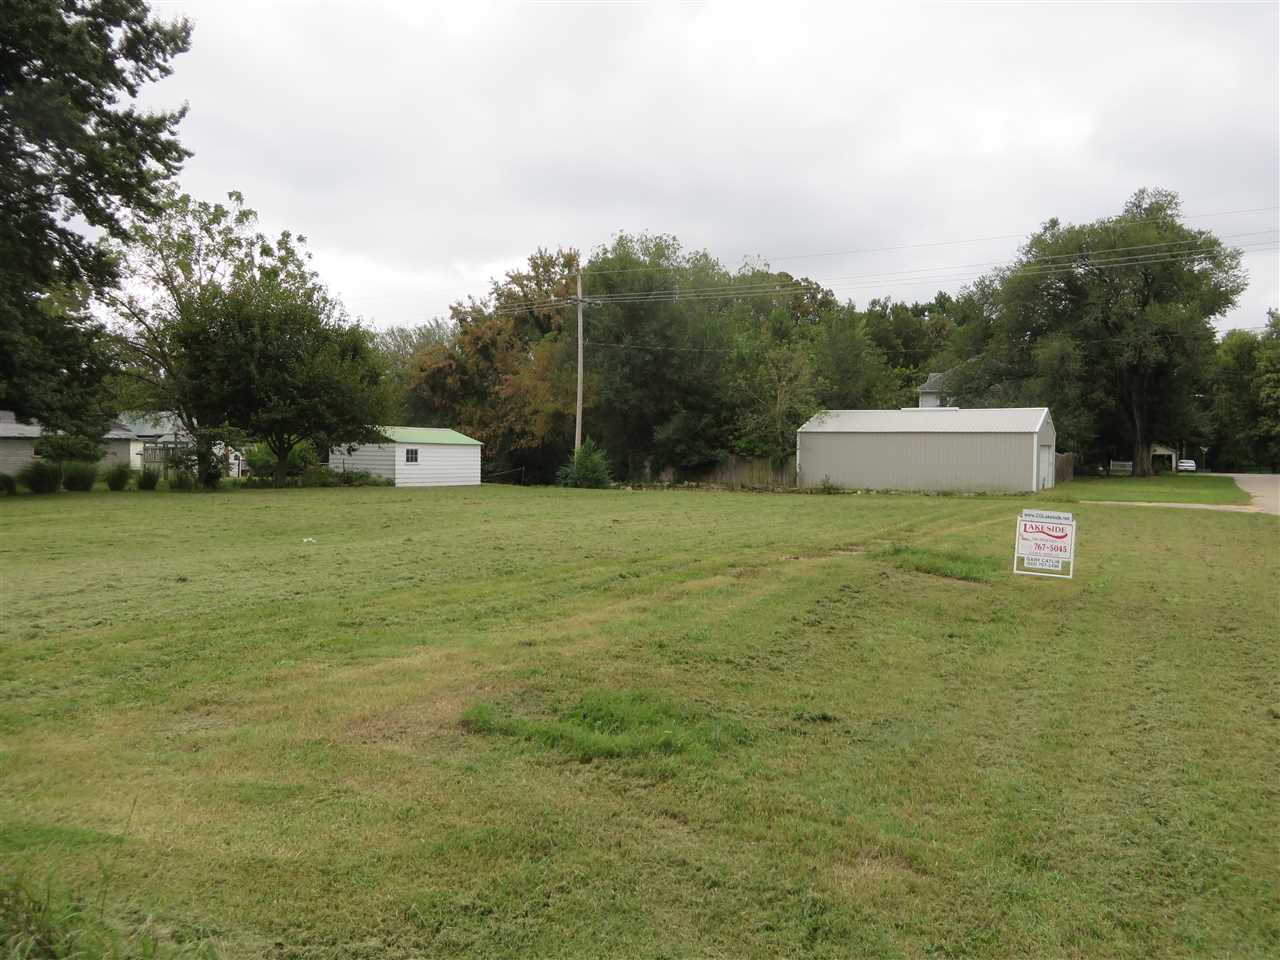 Large, corner 80x140' site that has been cleared and ready for new home. Has utilities underneath for easy hookup. Trees have been cleared and a survey done. Includes two city lots. Nice opportunity for single family home or duplex. Give Lakeside Properties a call for more information - (620) 767-5045